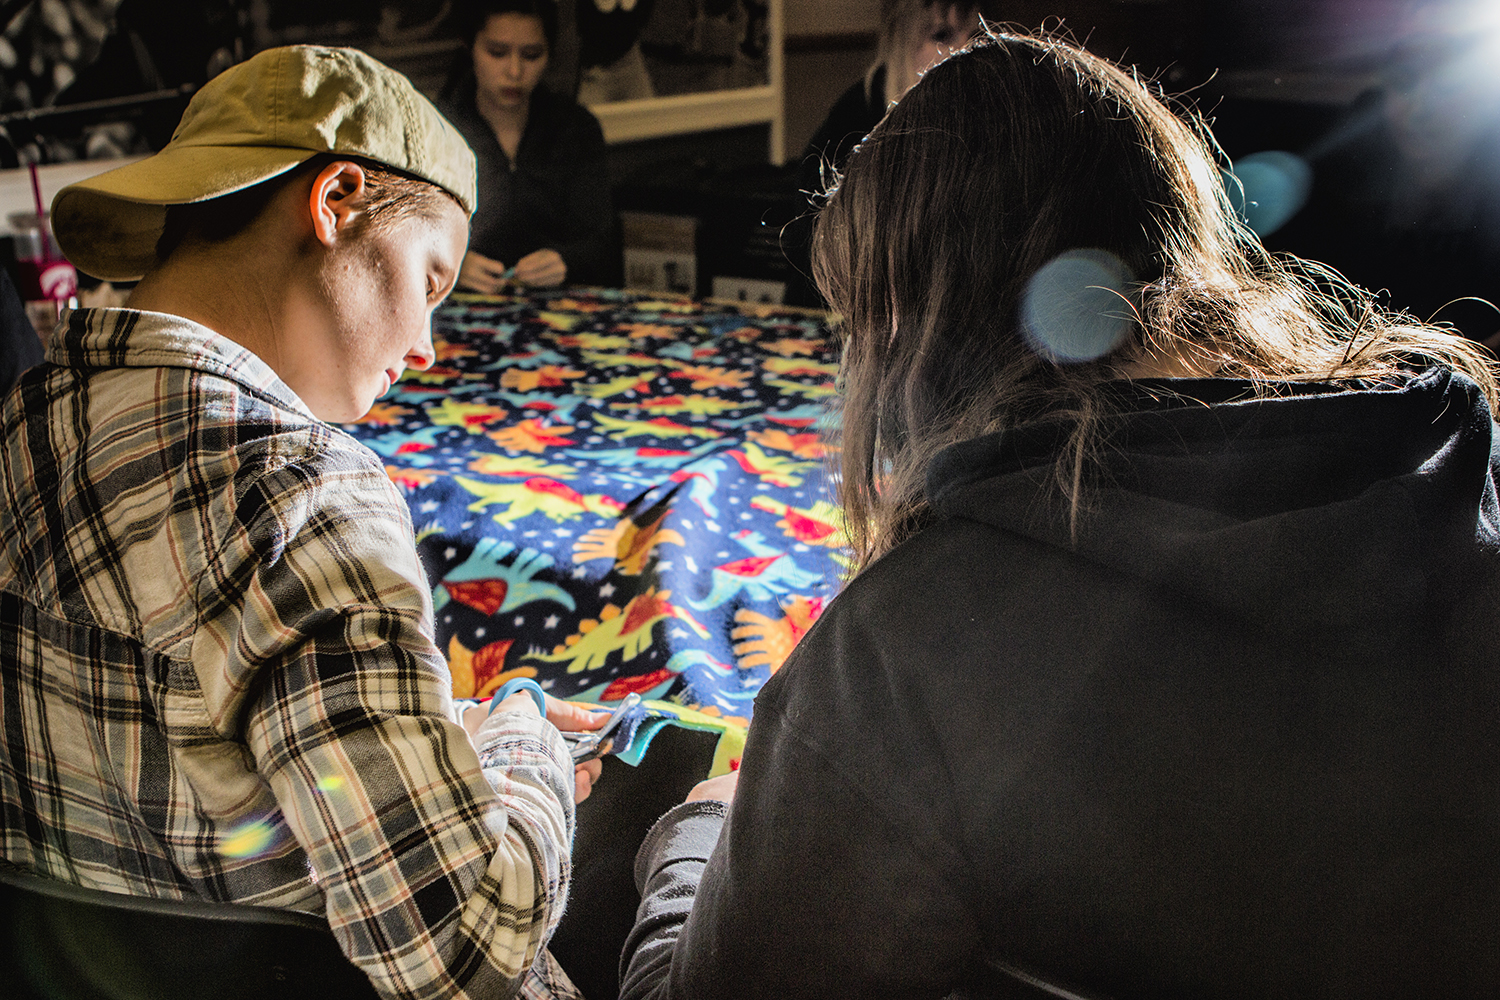 From left: UI freshmen Kyle Braeseke and Autumn Johnson cut a blanket during the Cover to Cover event at the IMU on Monday, October 29, 2018. Cover to Cover is a student organization dedicated to providing children in need with blankets and books. (Katina Zentz/The Daily Iowan)